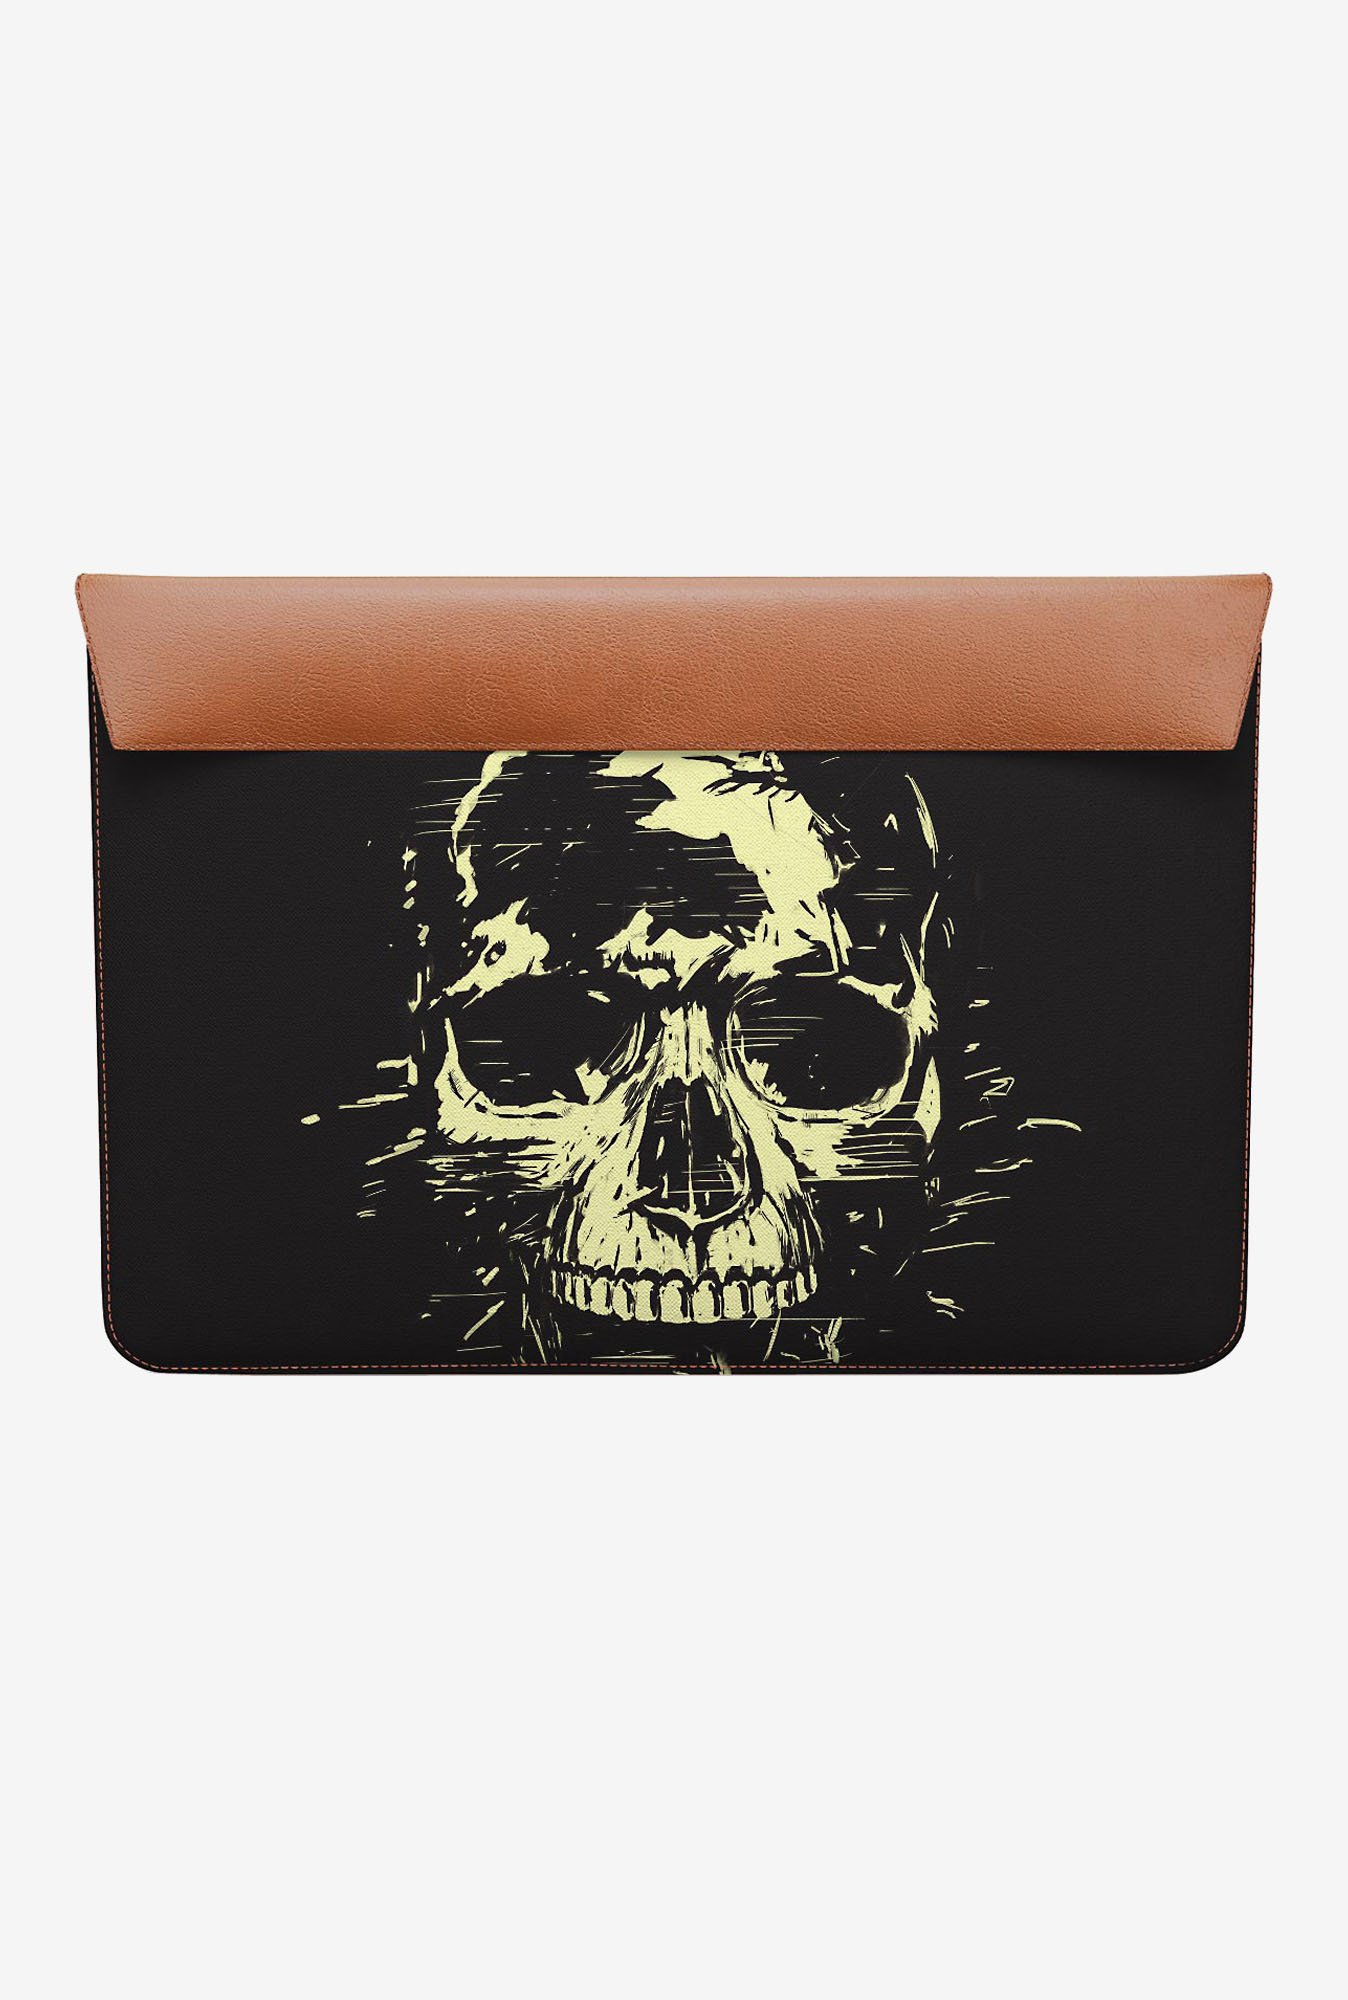 DailyObjects scream golden MacBook Air 11 Envelope Sleeve